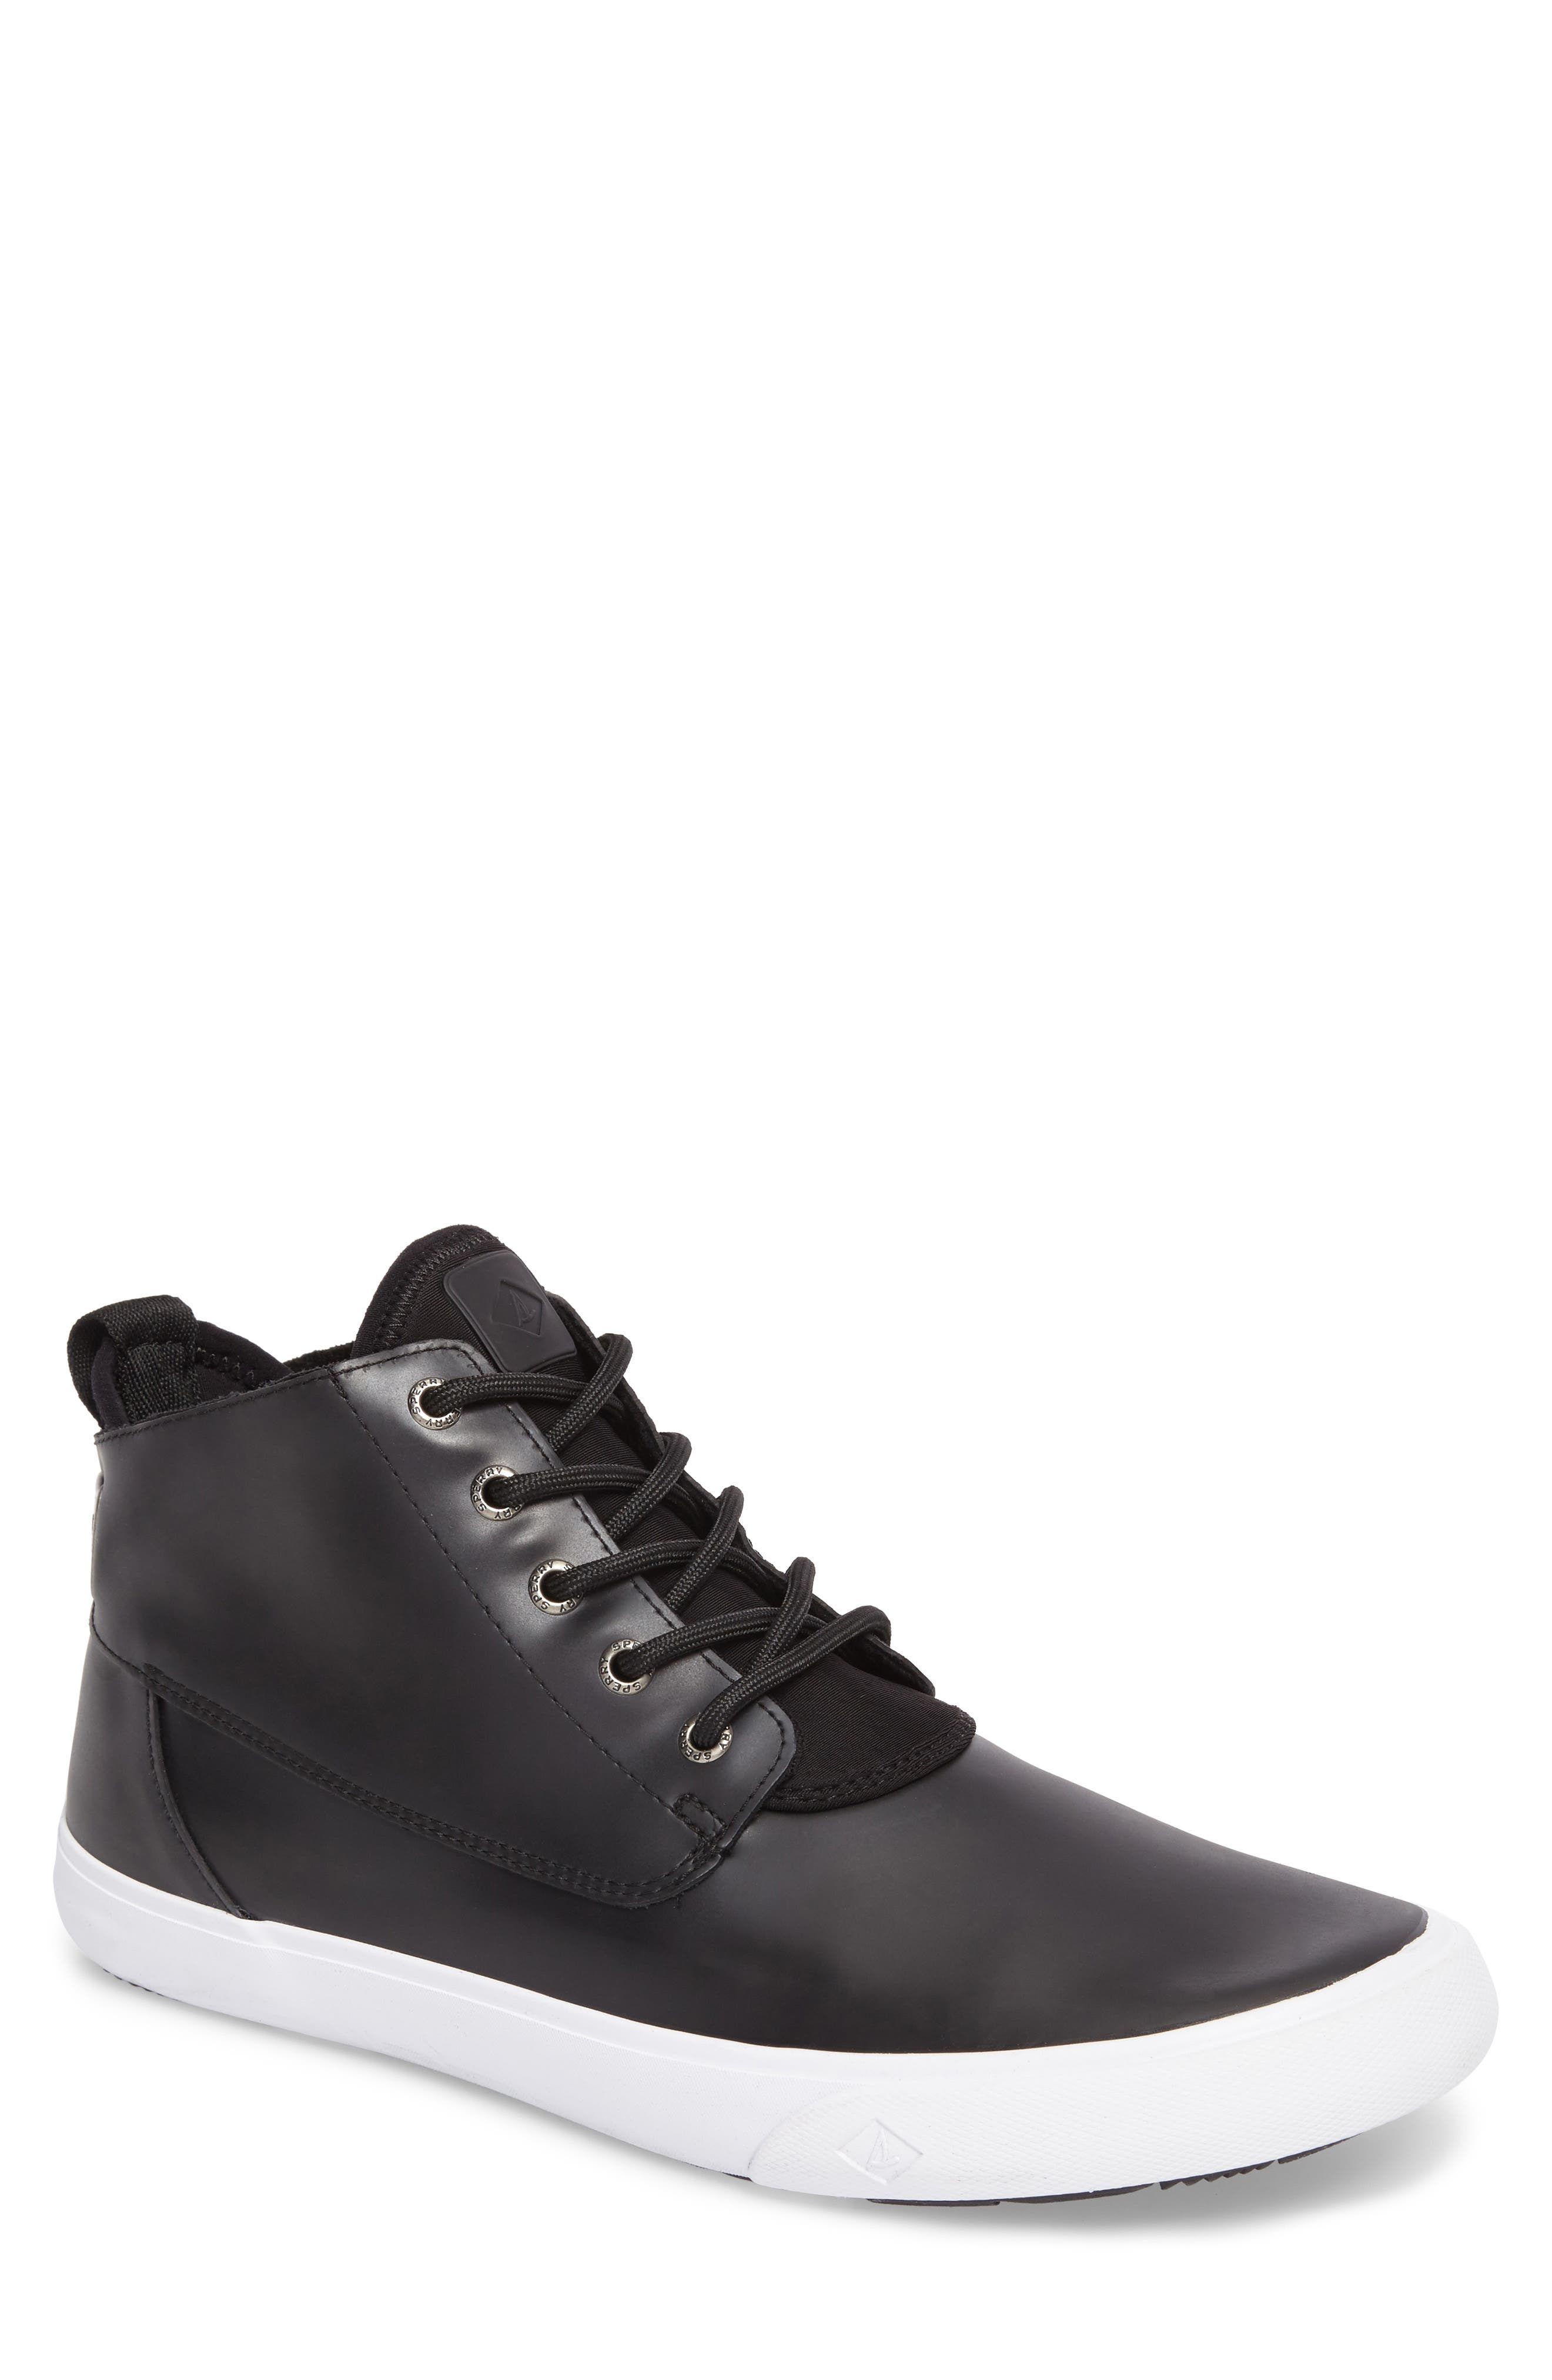 Cutwater Chukka Boot,                             Main thumbnail 1, color,                             Black Leather